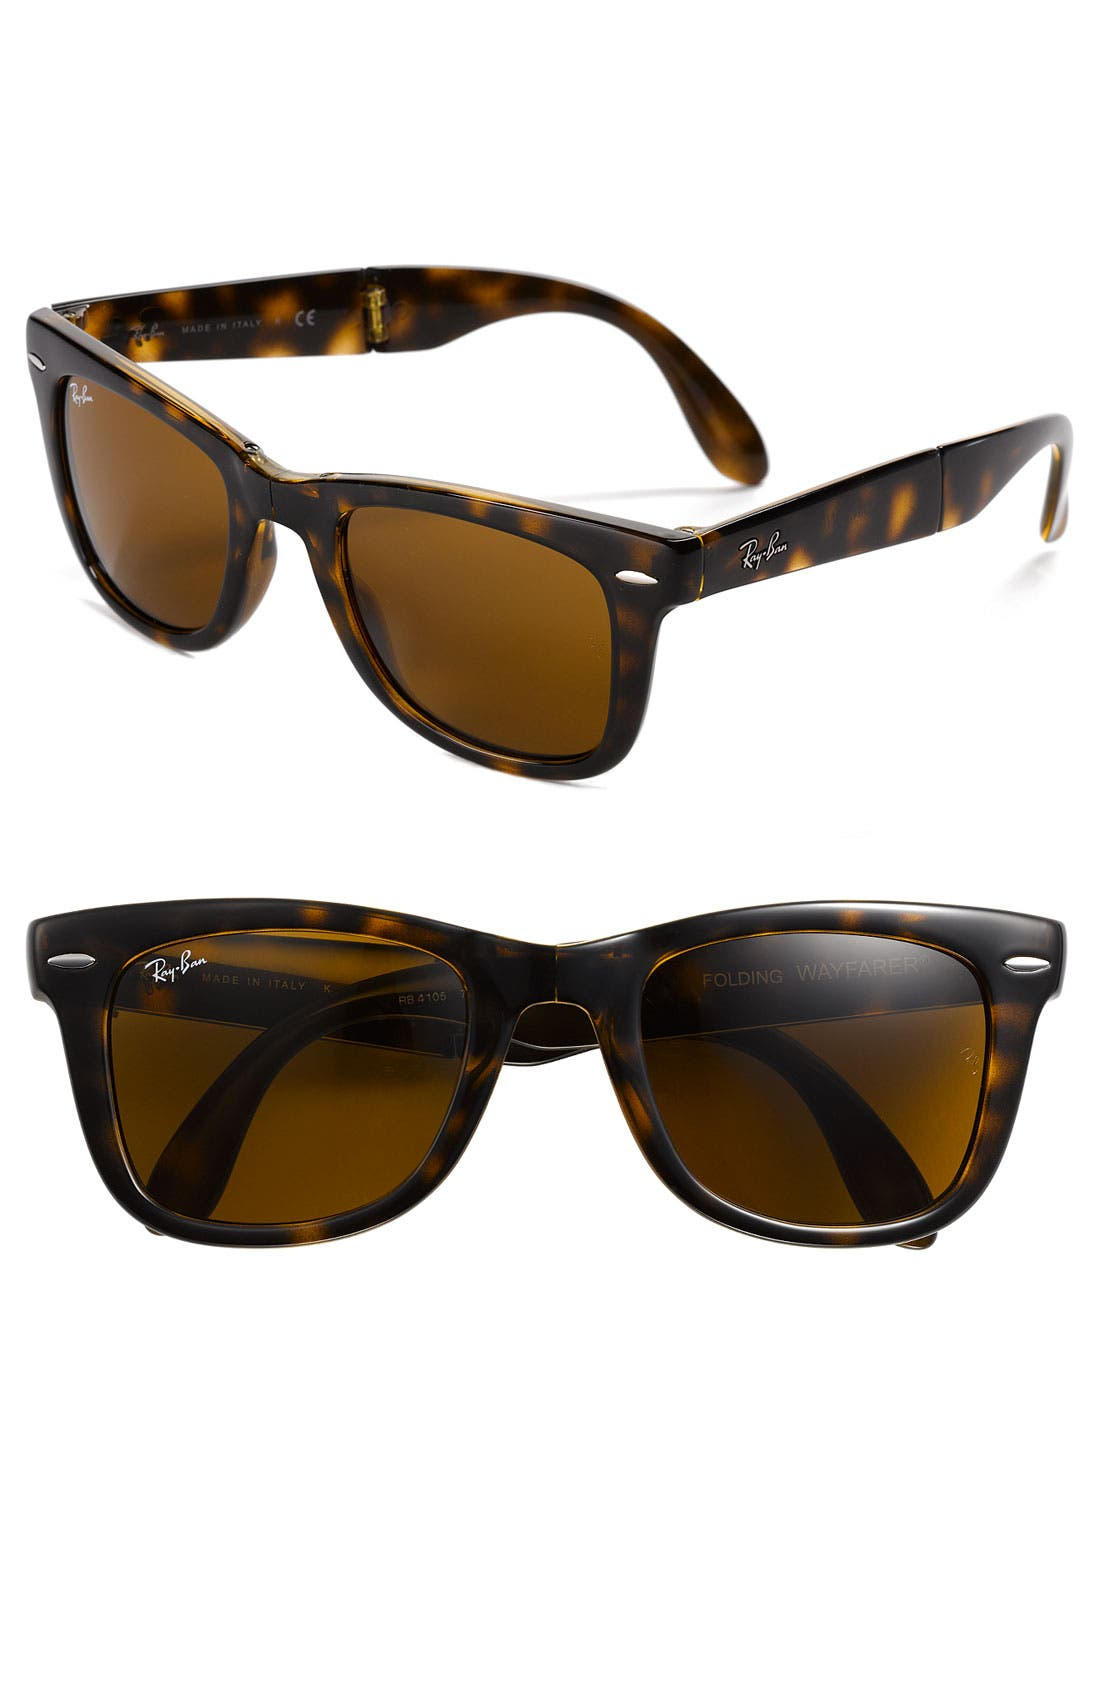 Main Image - Ray-Ban 'Folding Wayfarer' 50mm Sunglasses